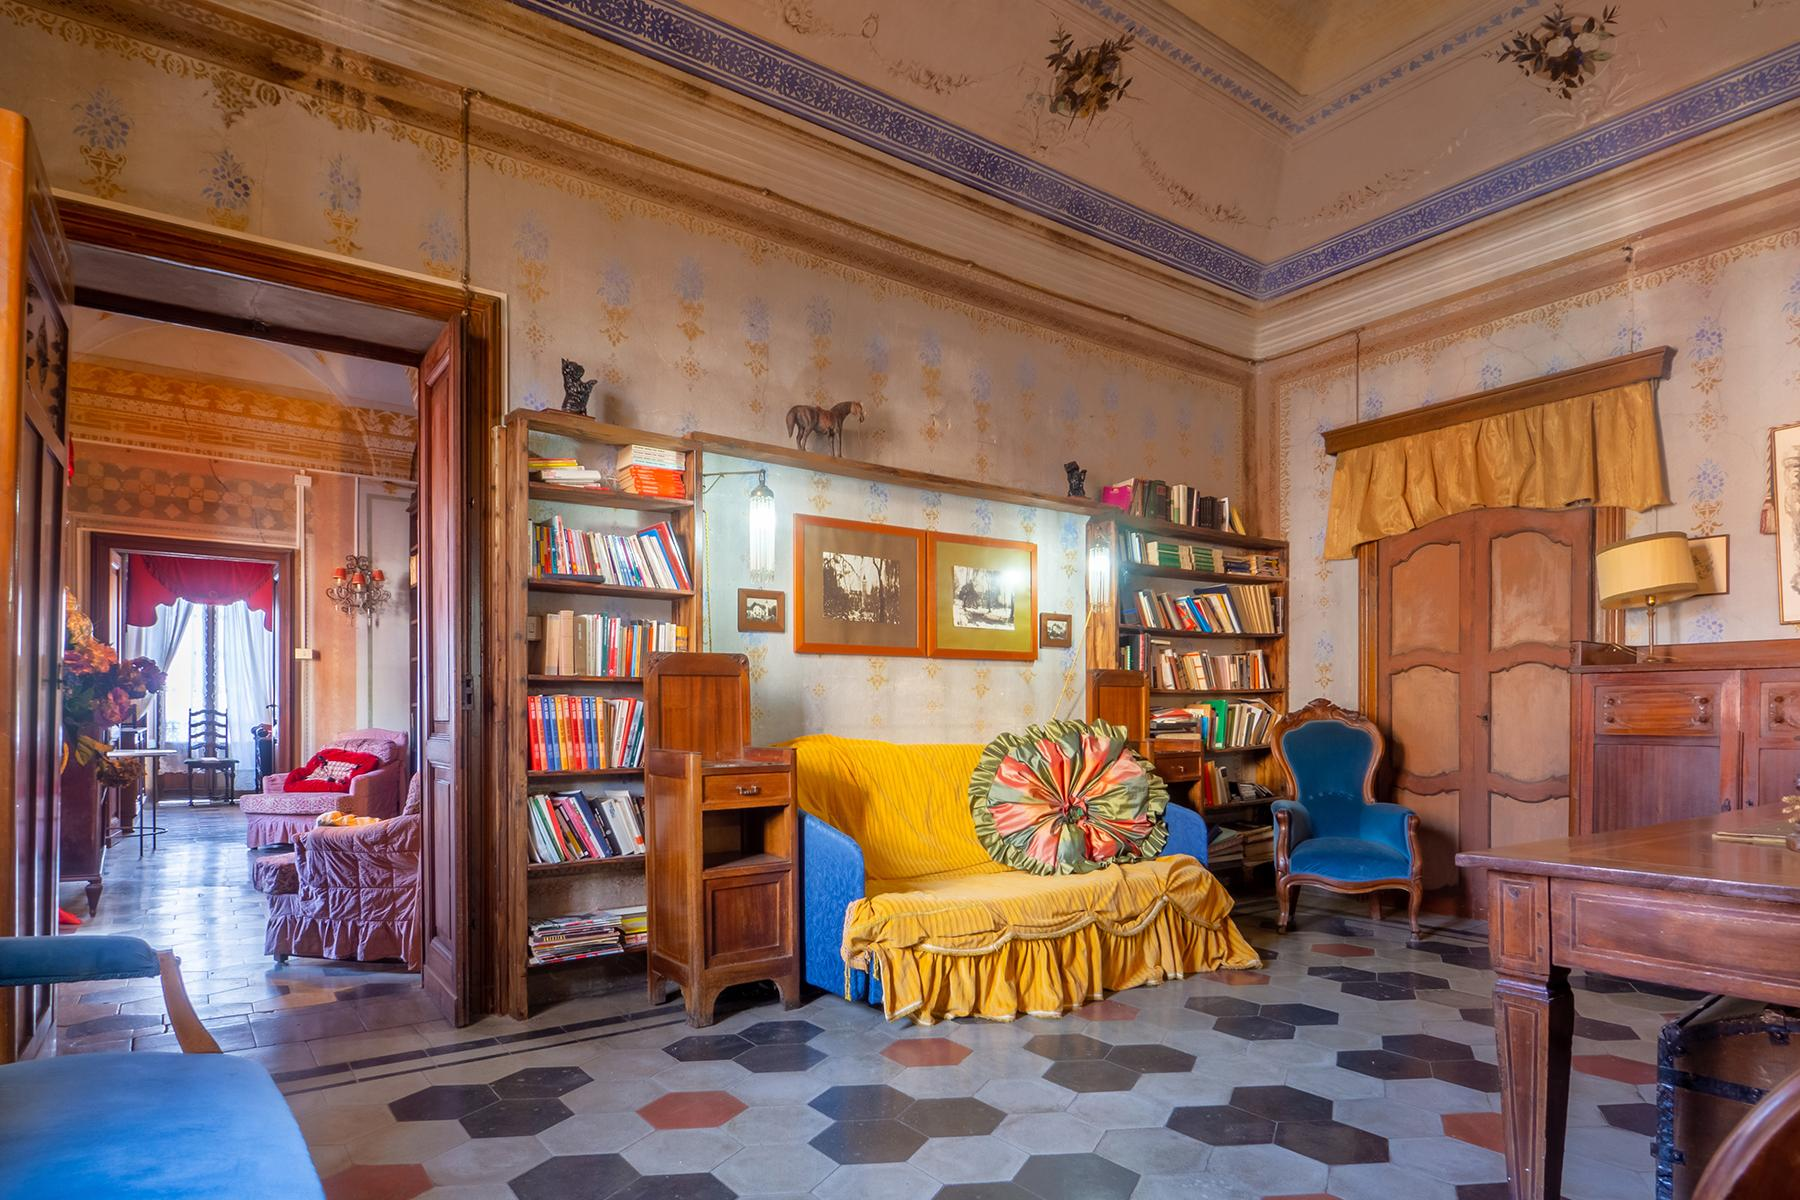 Charming historical residence in the centre of Rivalta Bormida - 22